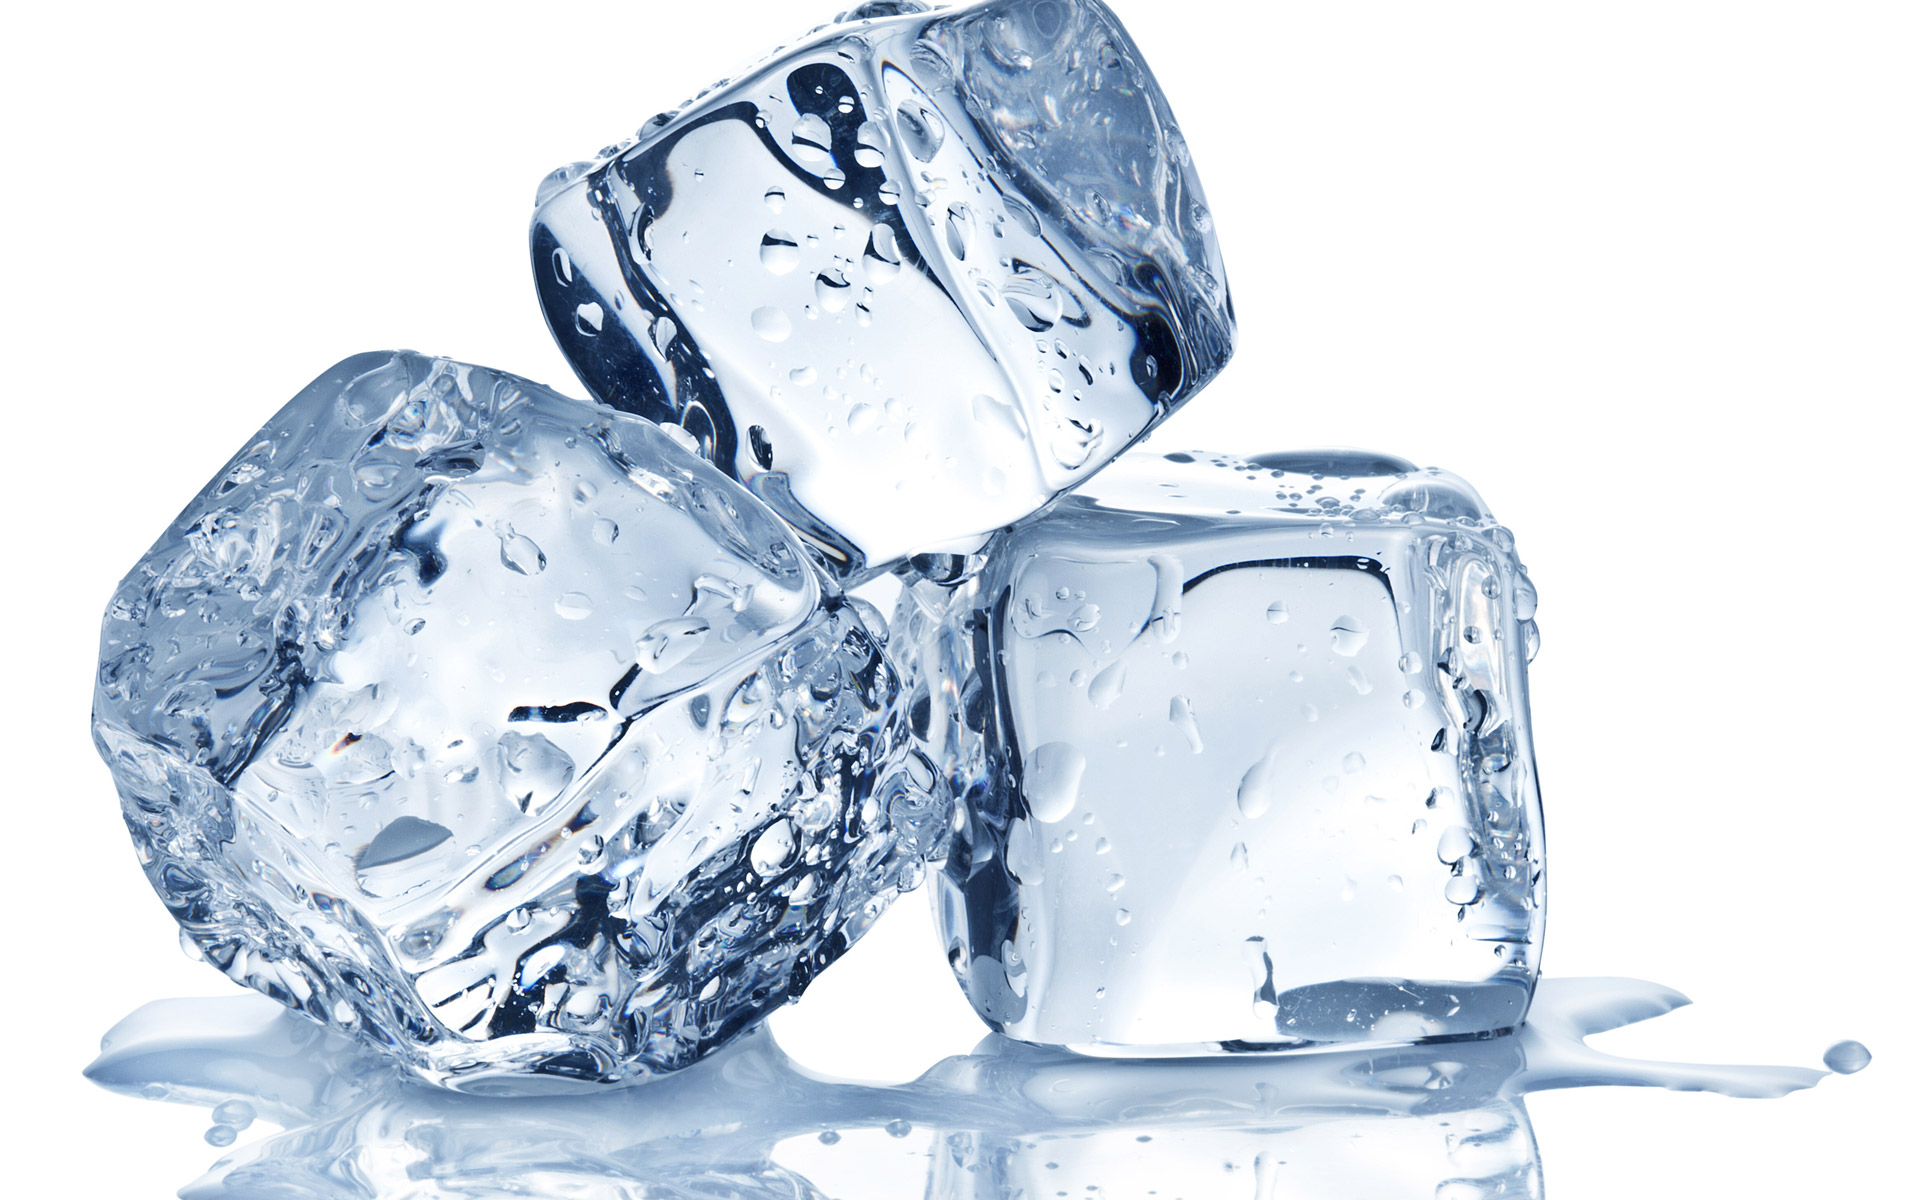 three ice cubes wallpapers55com   Best Wallpapers for PCs Laptops 1920x1200